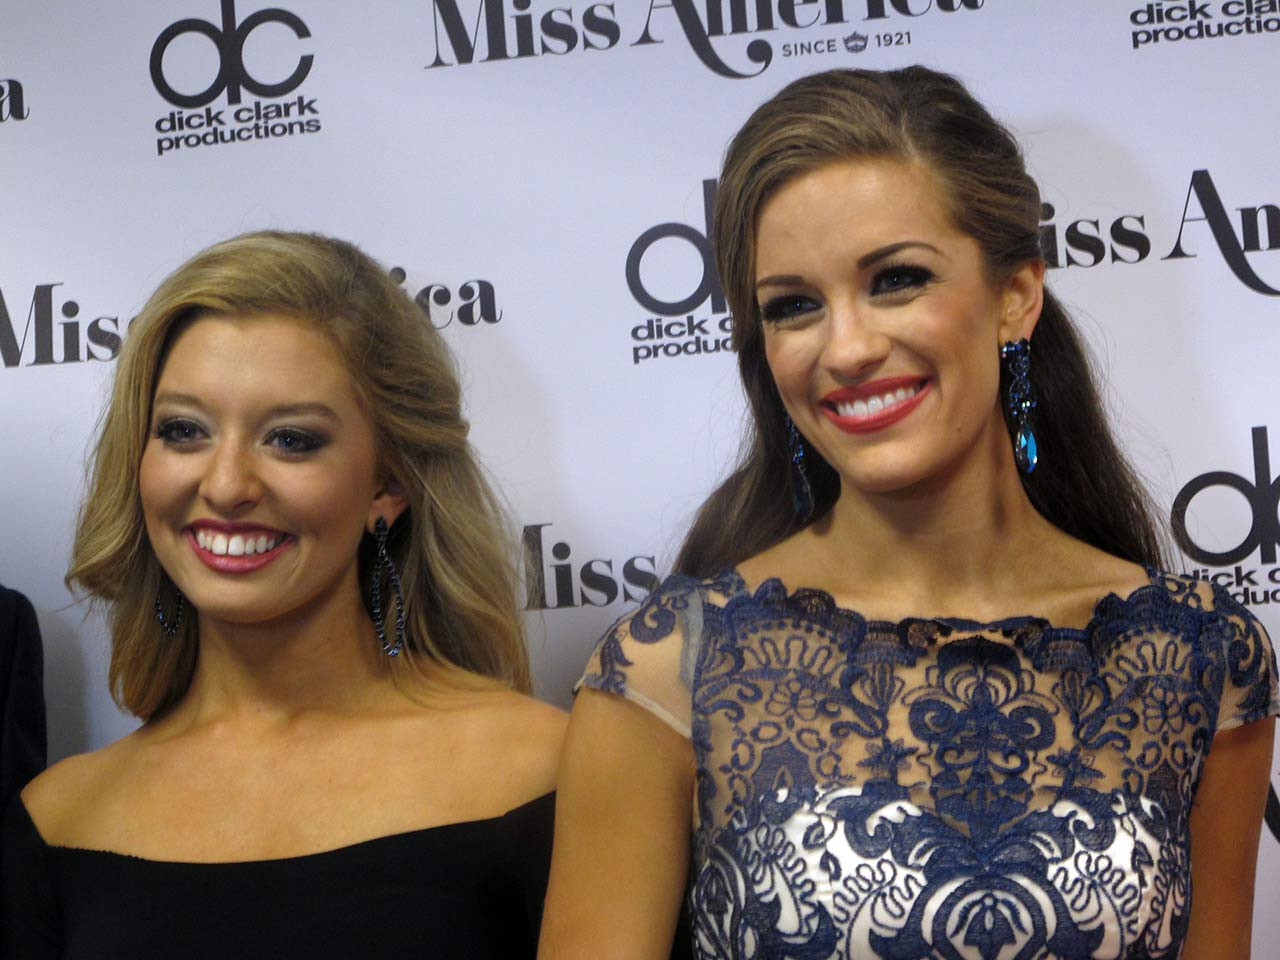 "<div class=""meta image-caption""><div class=""origin-logo origin-image ap""><span>AP</span></div><span class=""caption-text"">Miss Iowa Taylor Wiebers, left, and Miss Georgia Betty Cantrell, right, on Thursday Sept. 10, 2015 after winning awards in the Miss America preliminary competition (AP Photo/Wayne Parry)</span></div>"